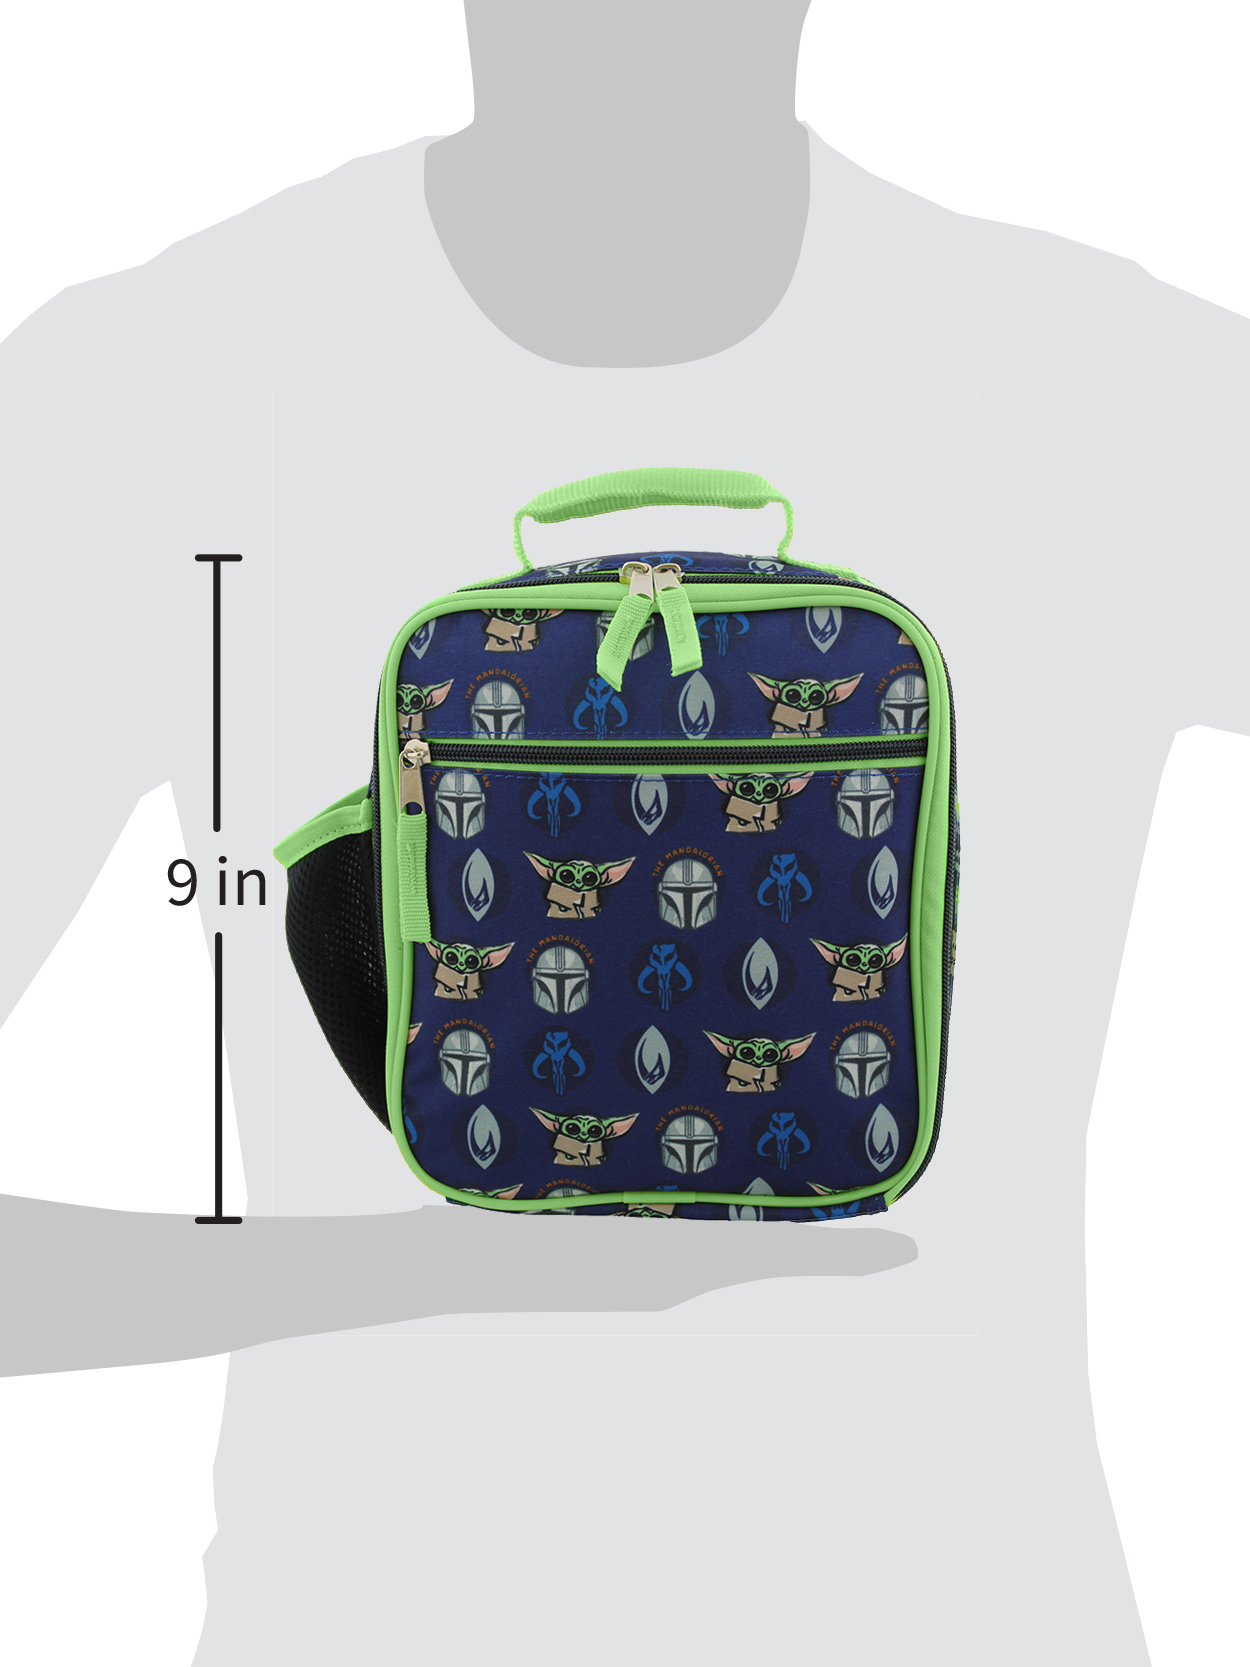 Details about  /Star Wars The Child Baby Yoda LUNCH KIT BOX BAG Insulated Dual Compartment New